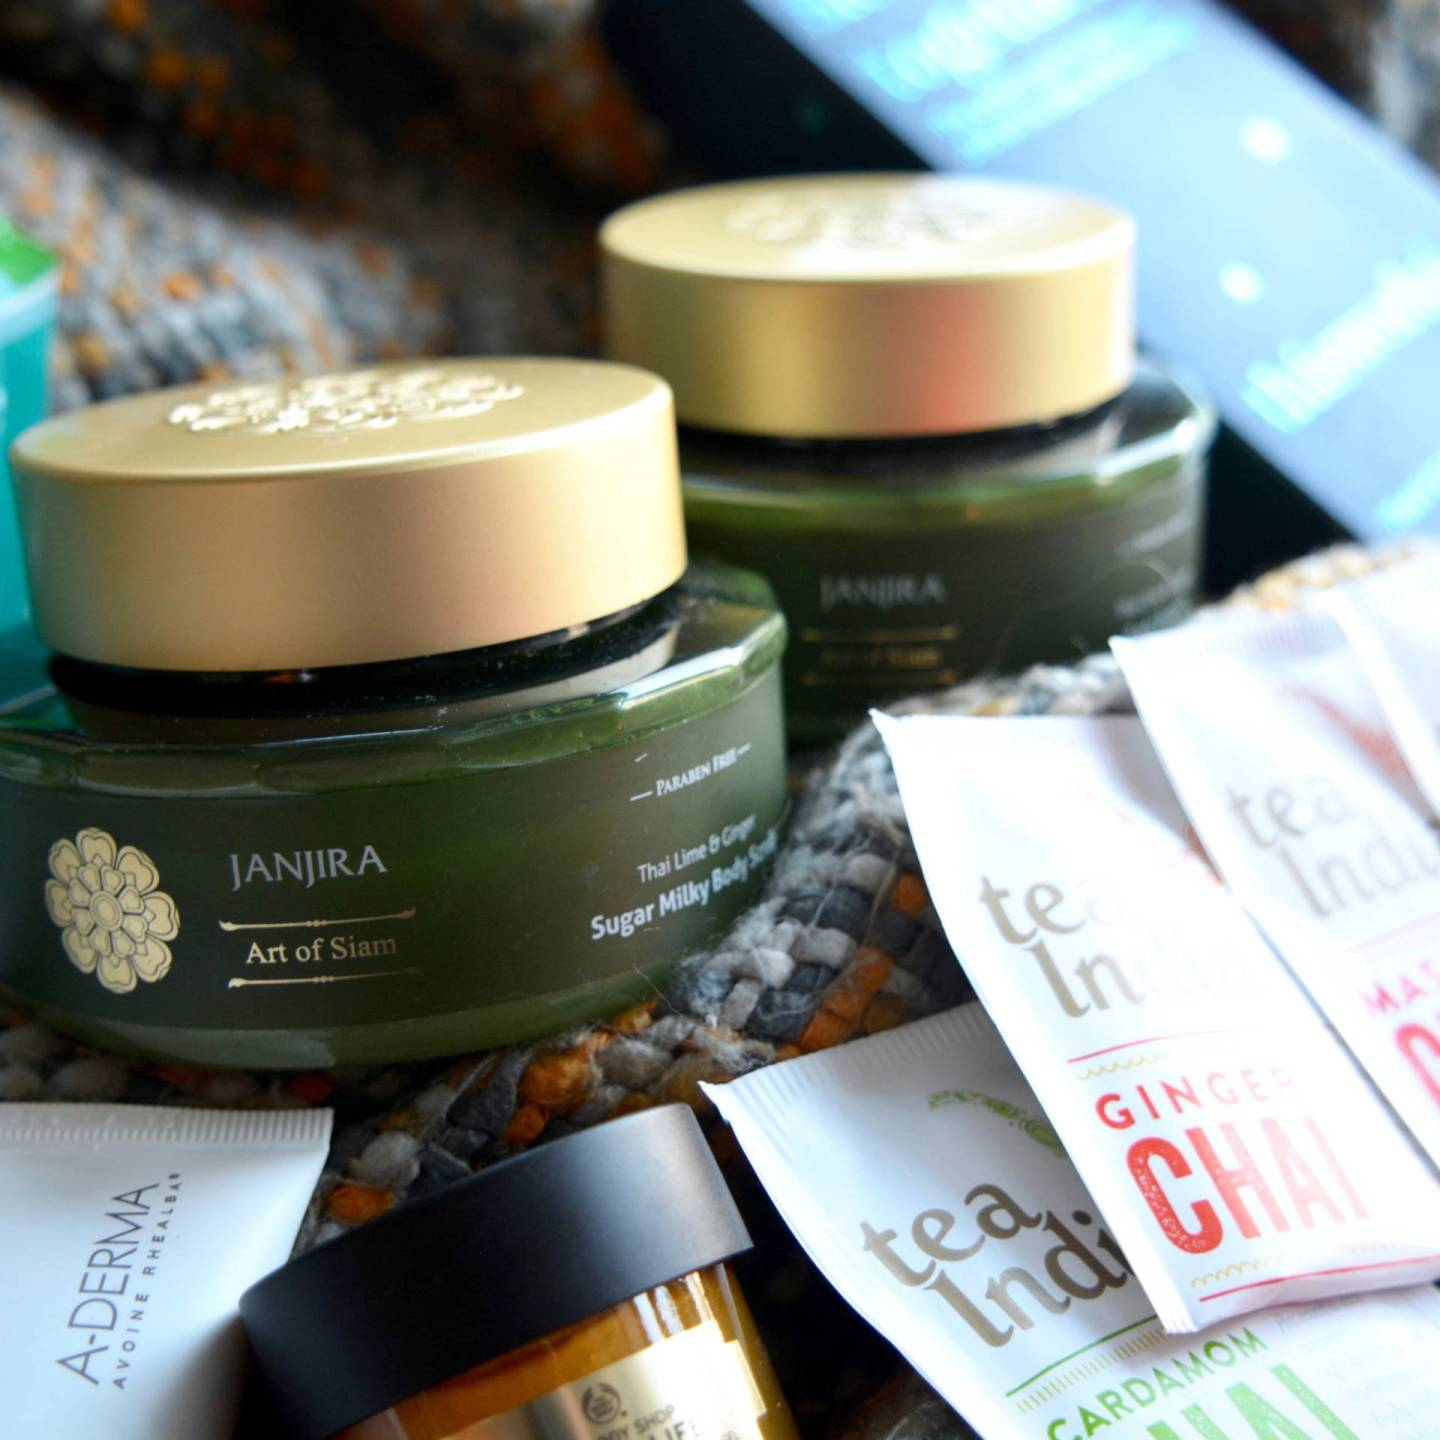 Winter pamper - The Janjira Thai Lime and Ginger body scrub and body butter are the perfect way to get smooth skin with a lingering luxurious scent